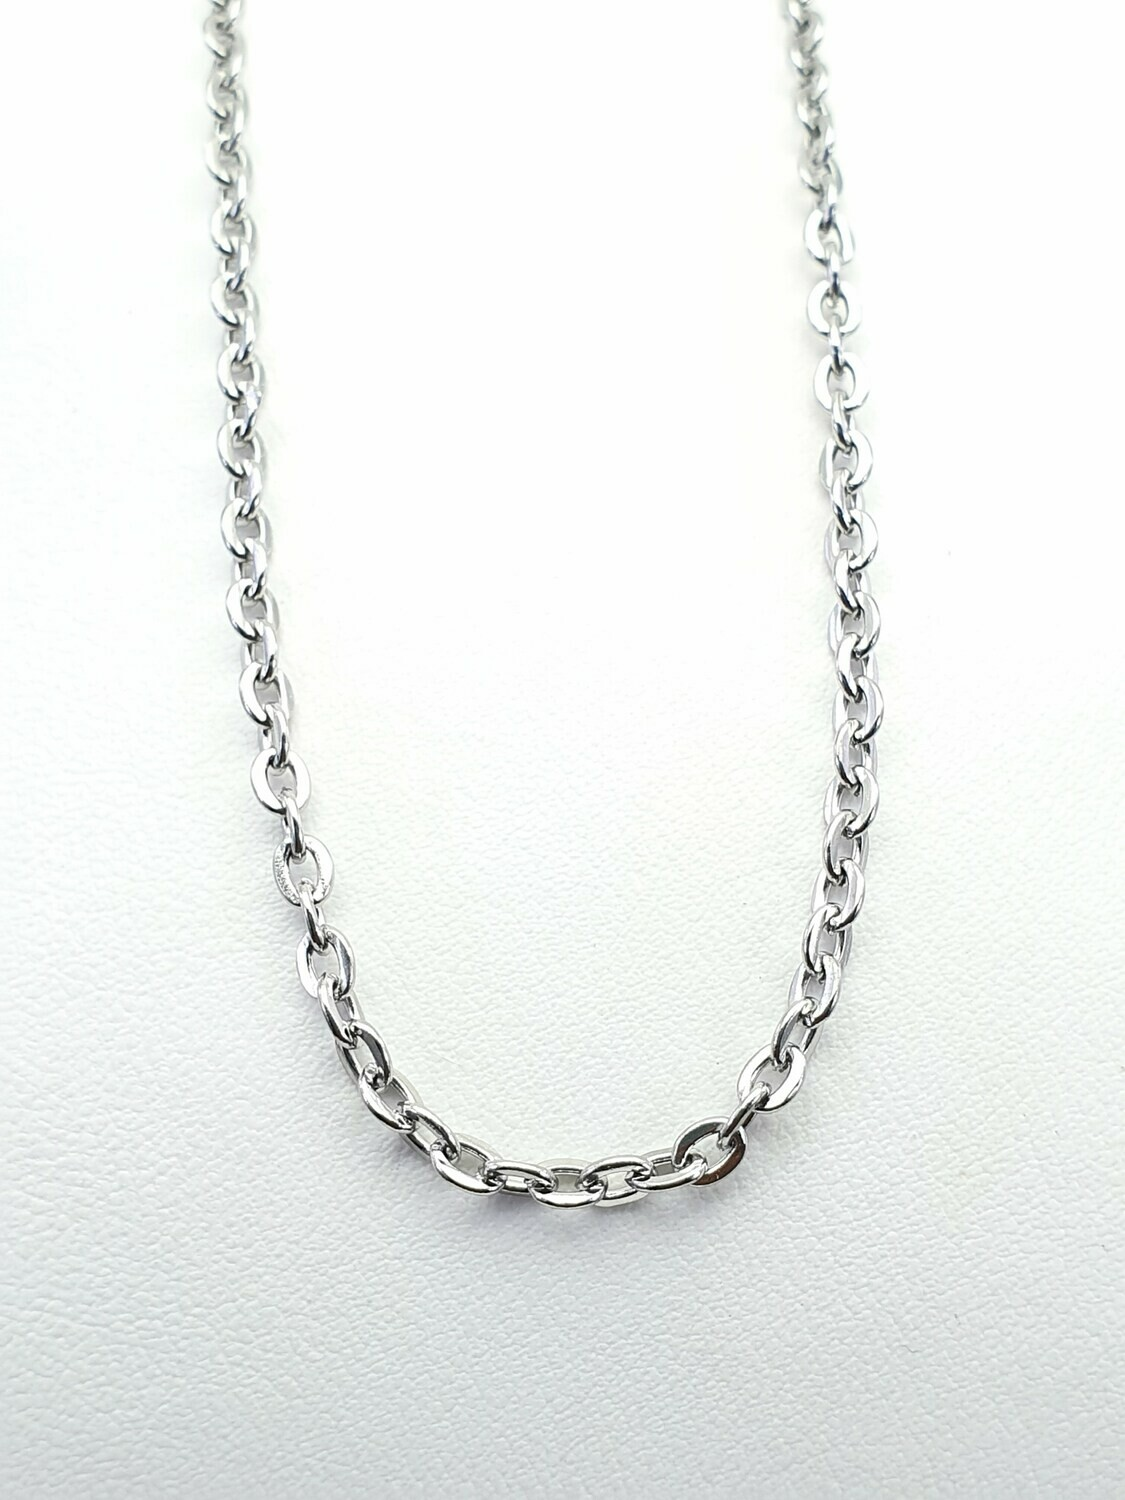 Chain, Stainless steel